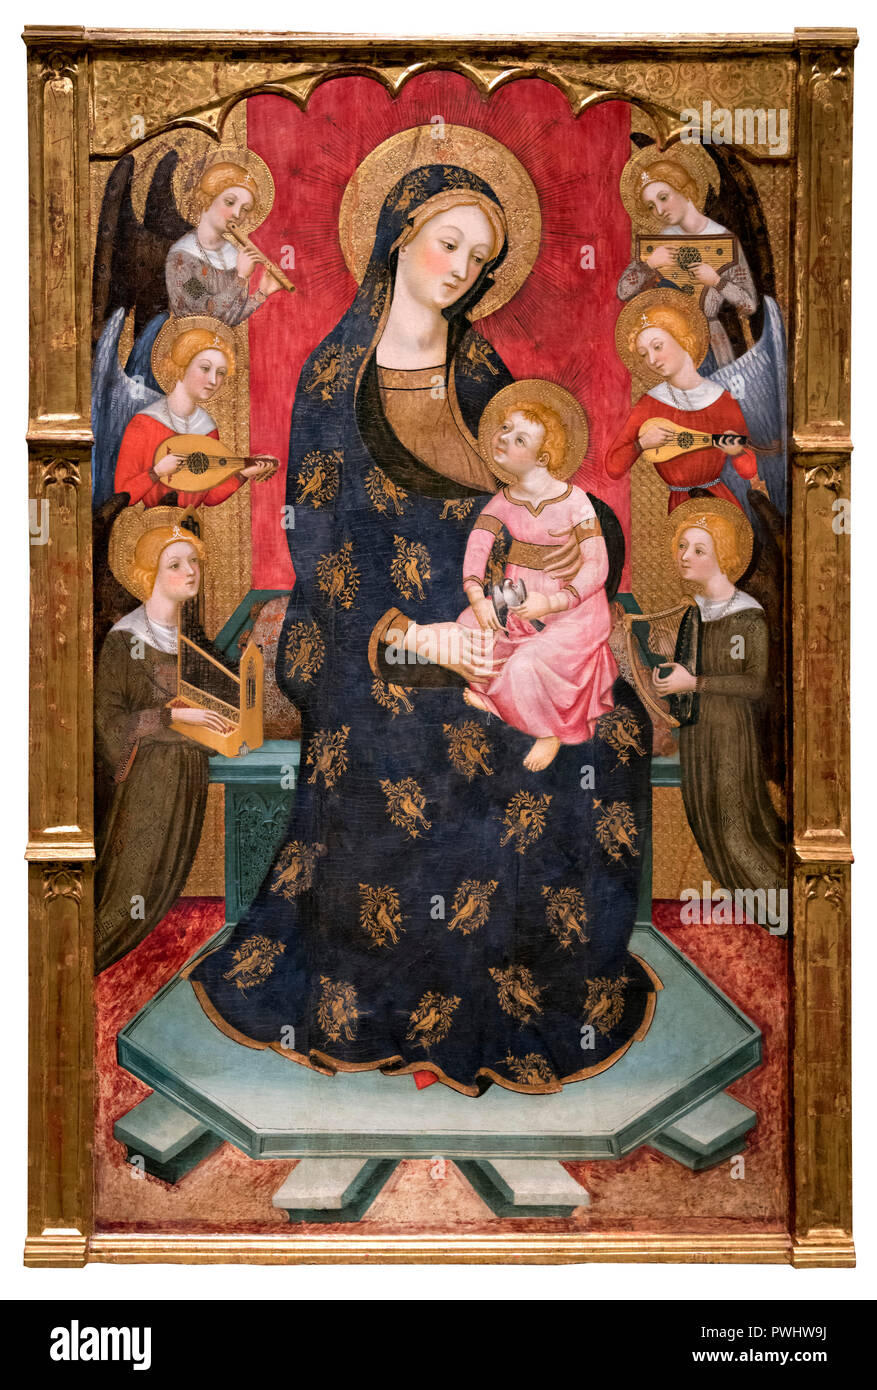 The Virgin of the Angels and Saints by Pere Serra, egg tempera and gilt on wood, c.1385 - Stock Image